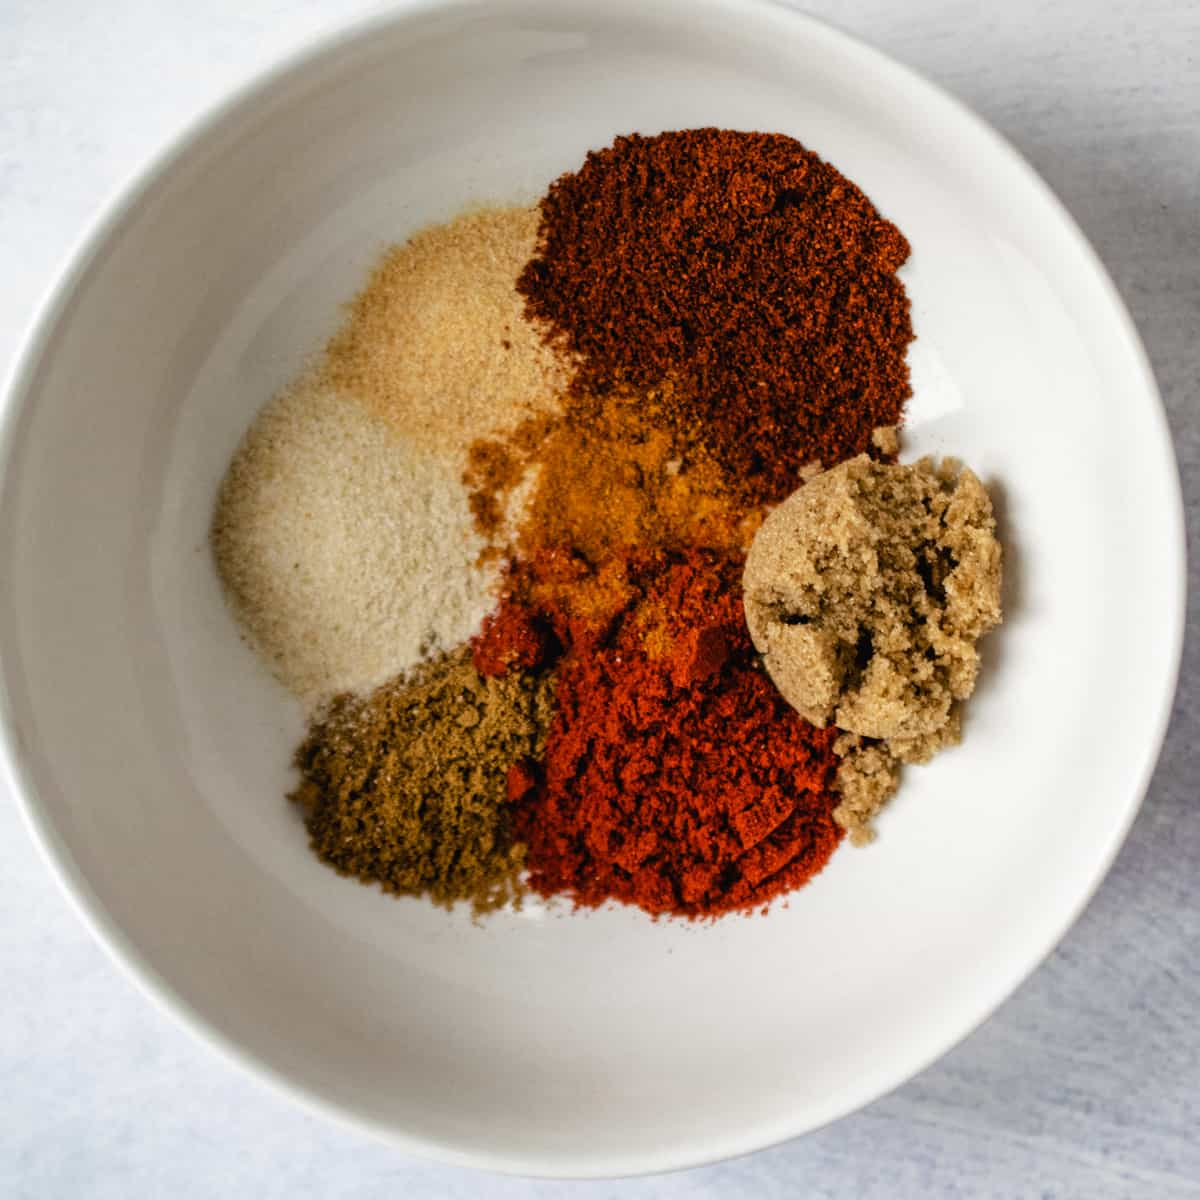 White bowl filled with seasonings and spices for making chili mix at home.